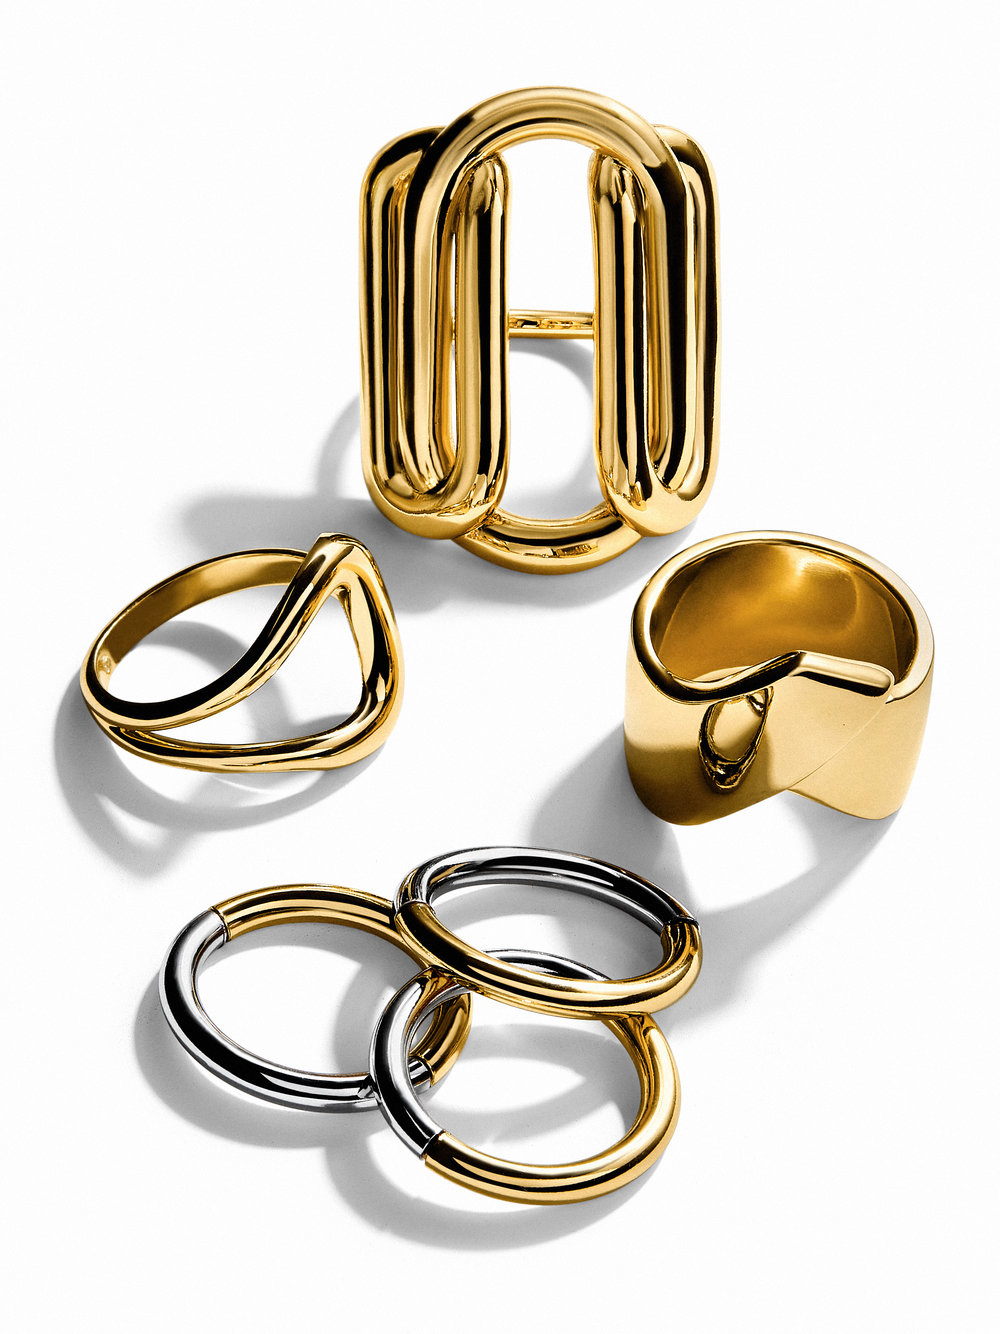 2.13_MustHave_Fluid_Metal_Rings_main_Nobrand.jpg